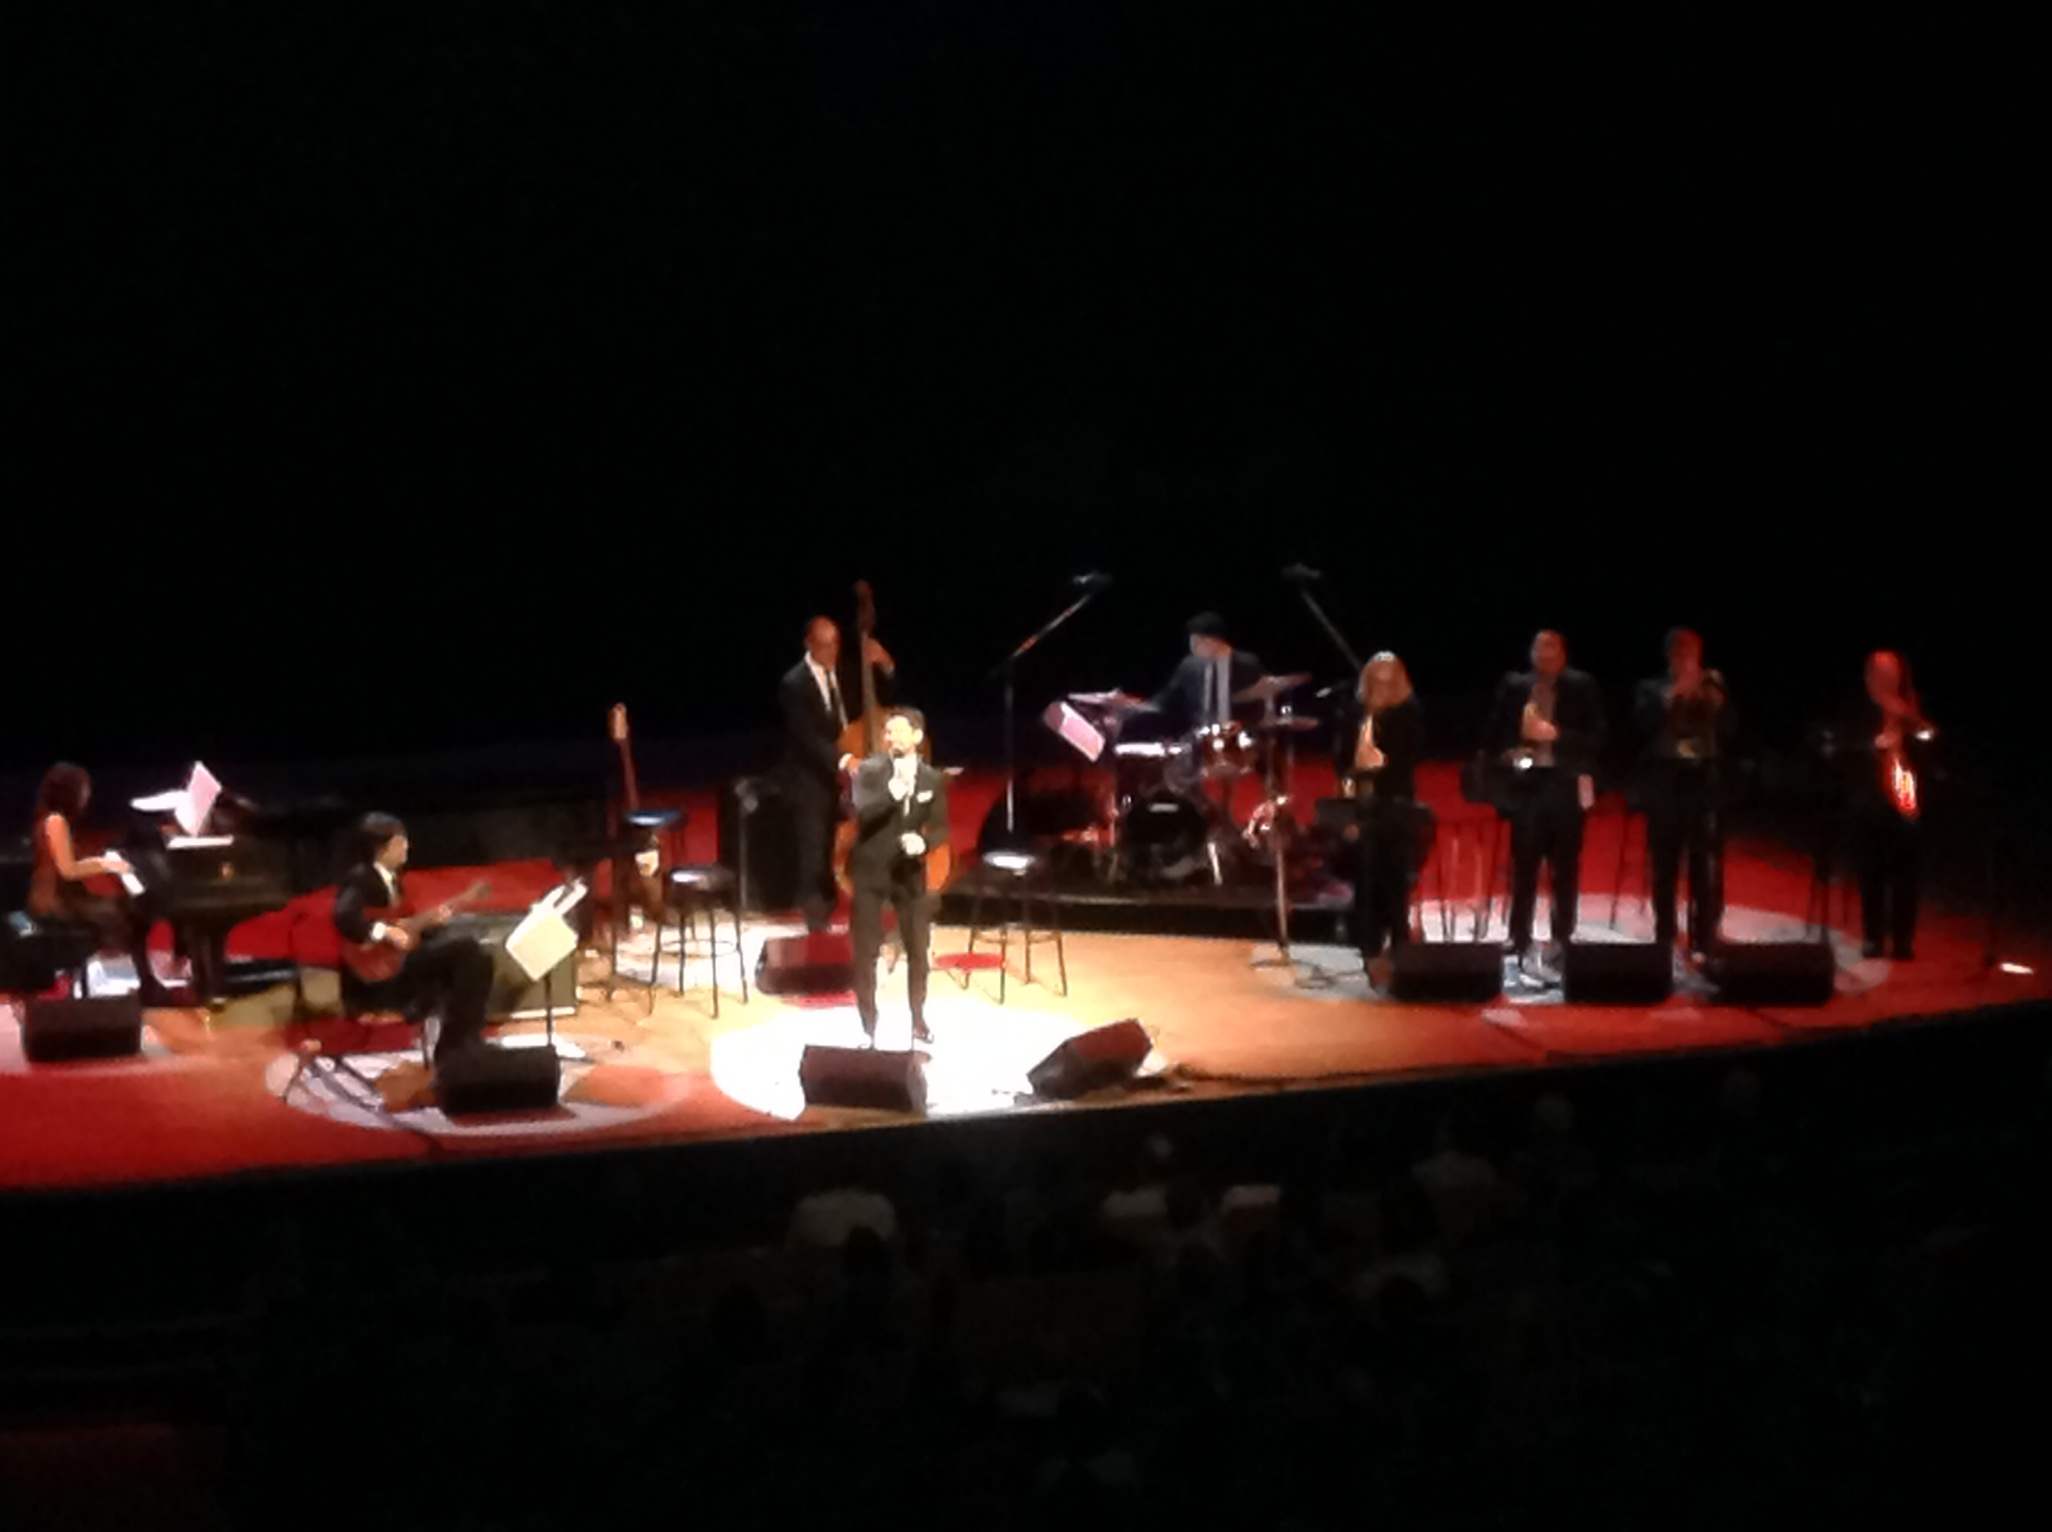 Emilie-Claire Brown & Matt Dusk on stage